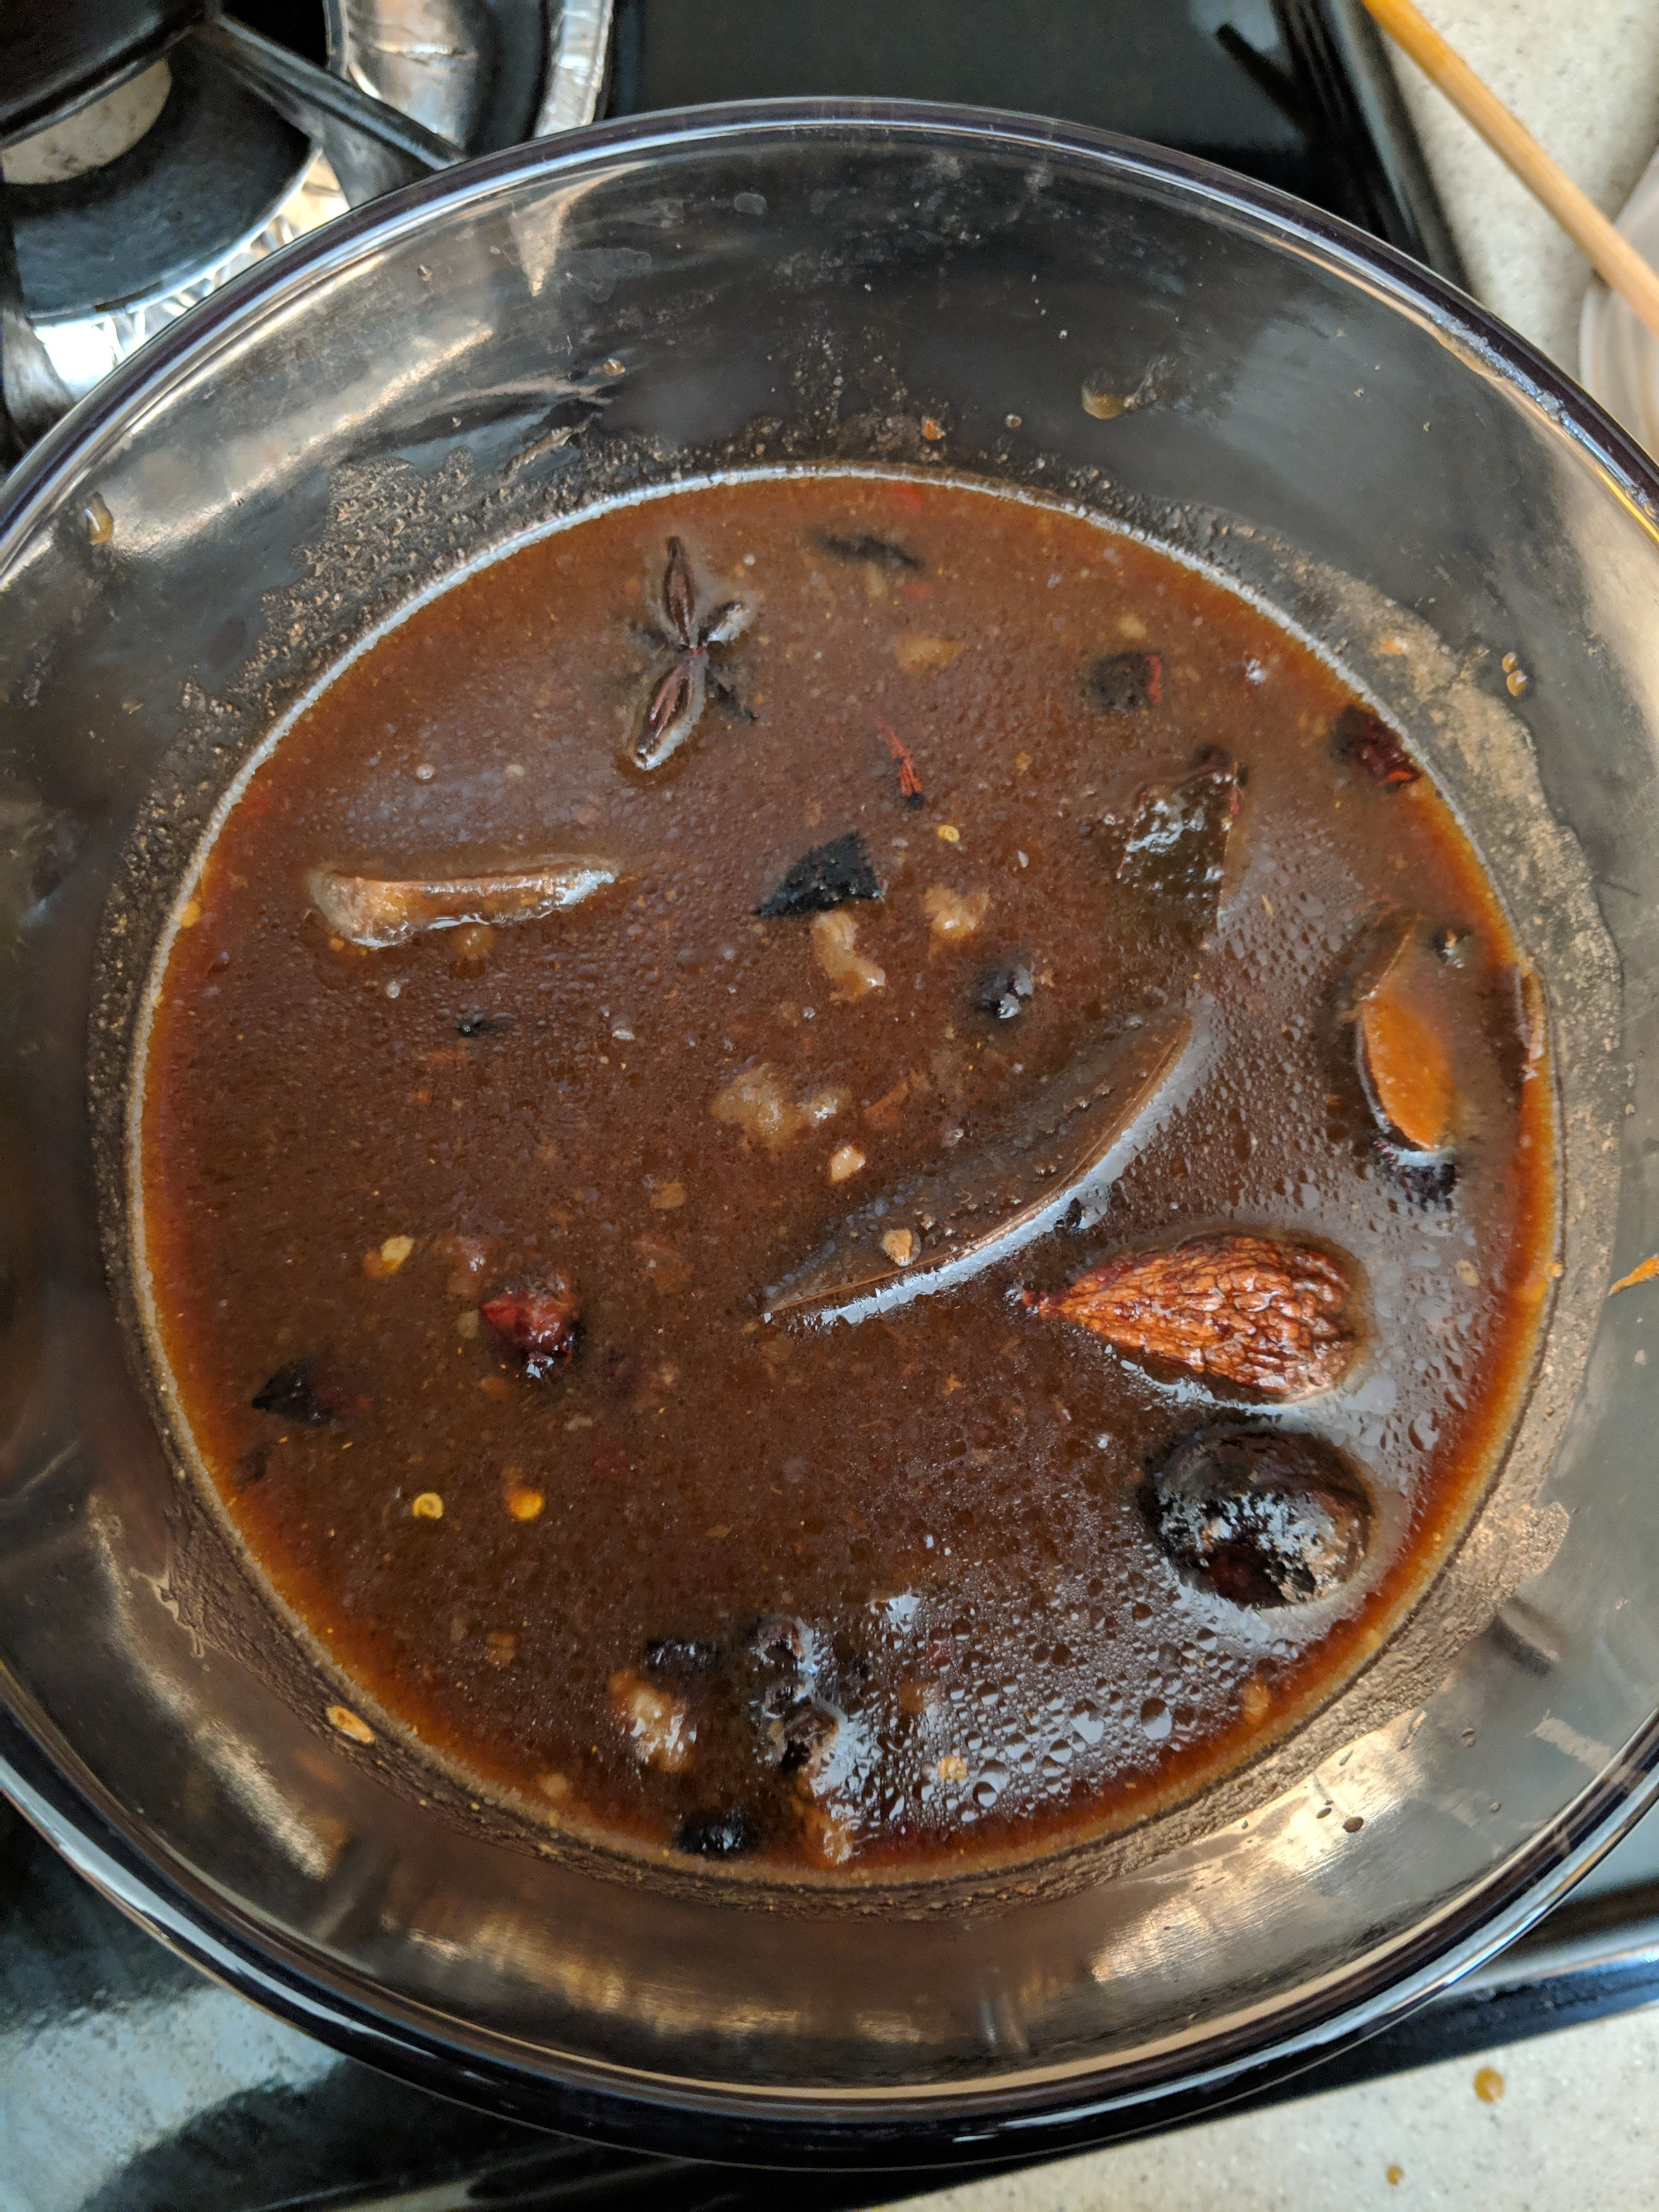 This is what the marinade looks like in the pot after boiling.